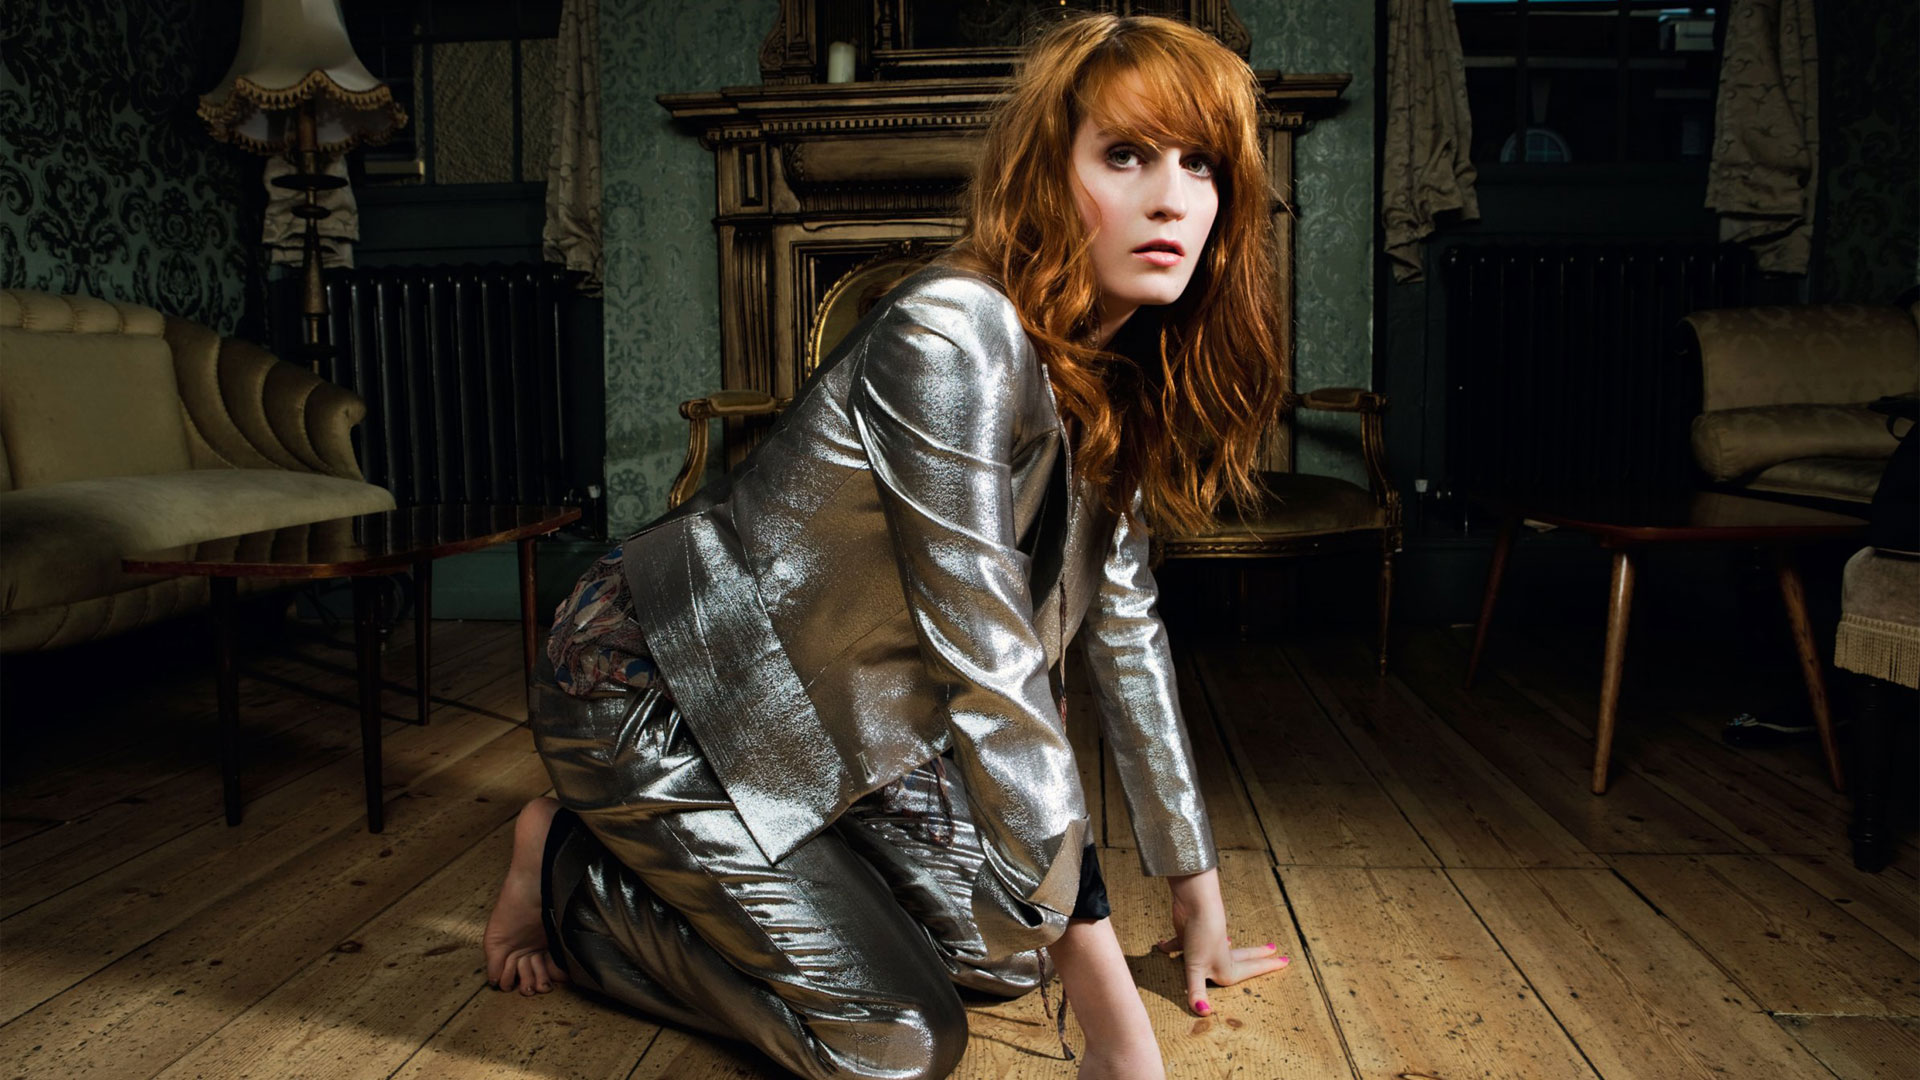 Listen to the new track from Florence & The Machine - 'Delilah'